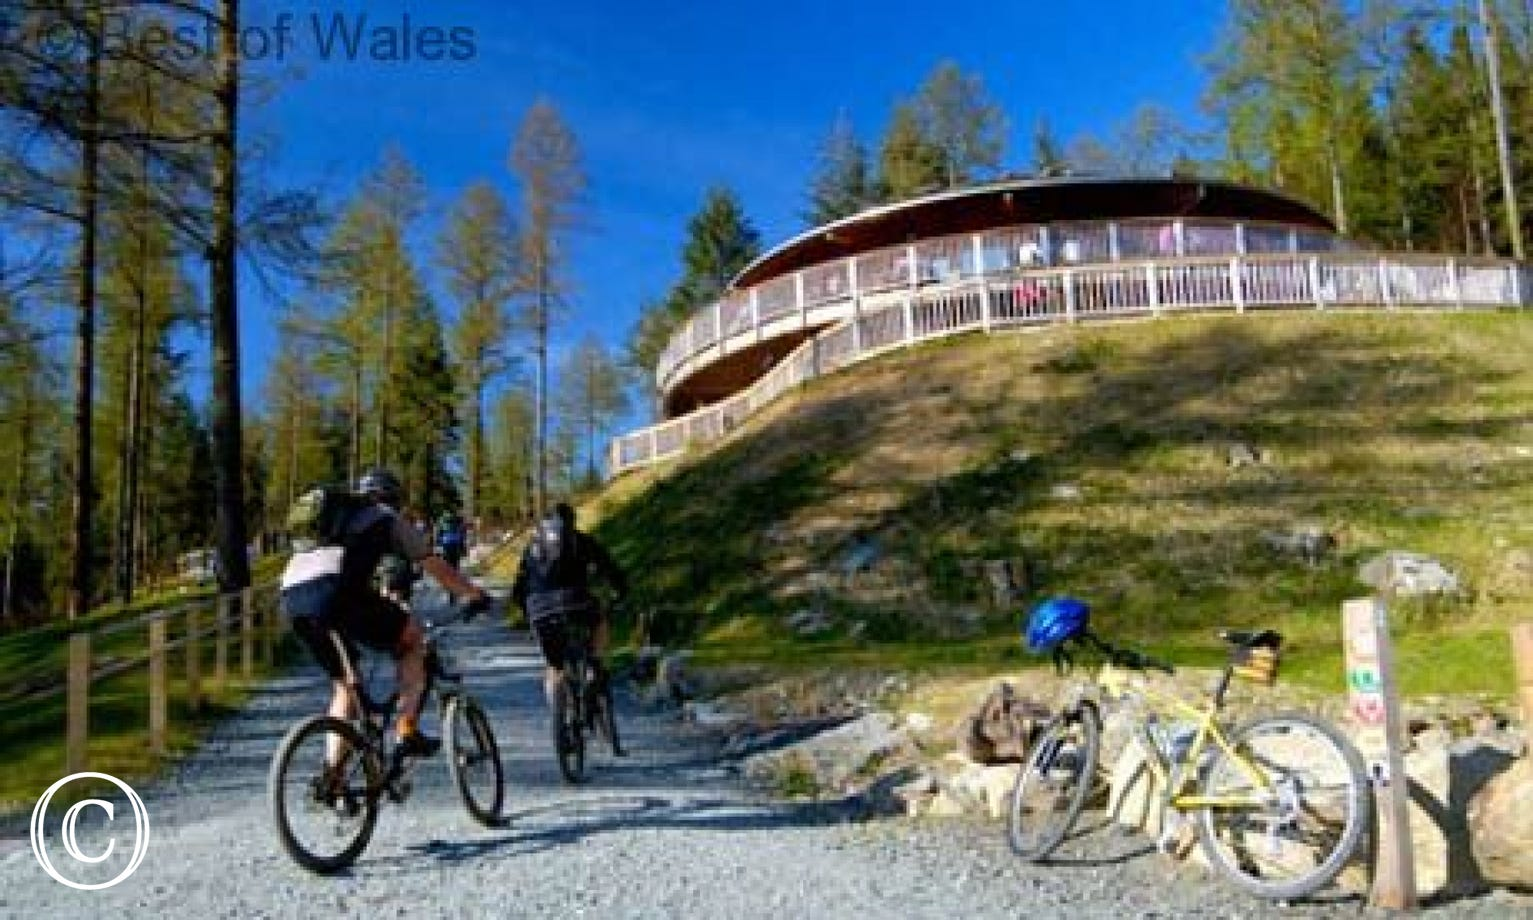 Coed y Brenin Mountain Biking Centre, just 10 miles from the cottage